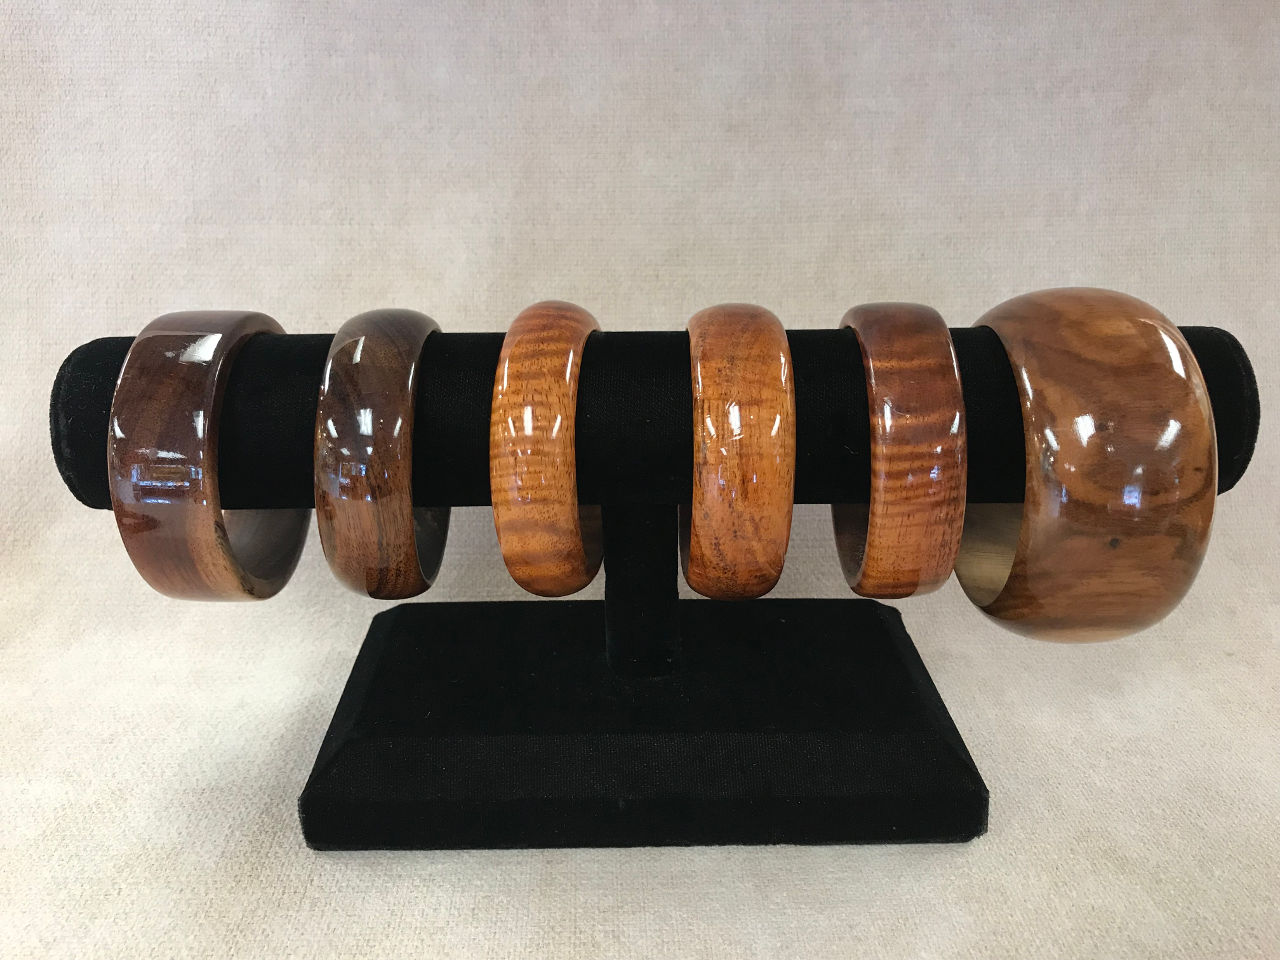 Hawaiian Koa Wood Bracelets by Roger Sanchez six examples